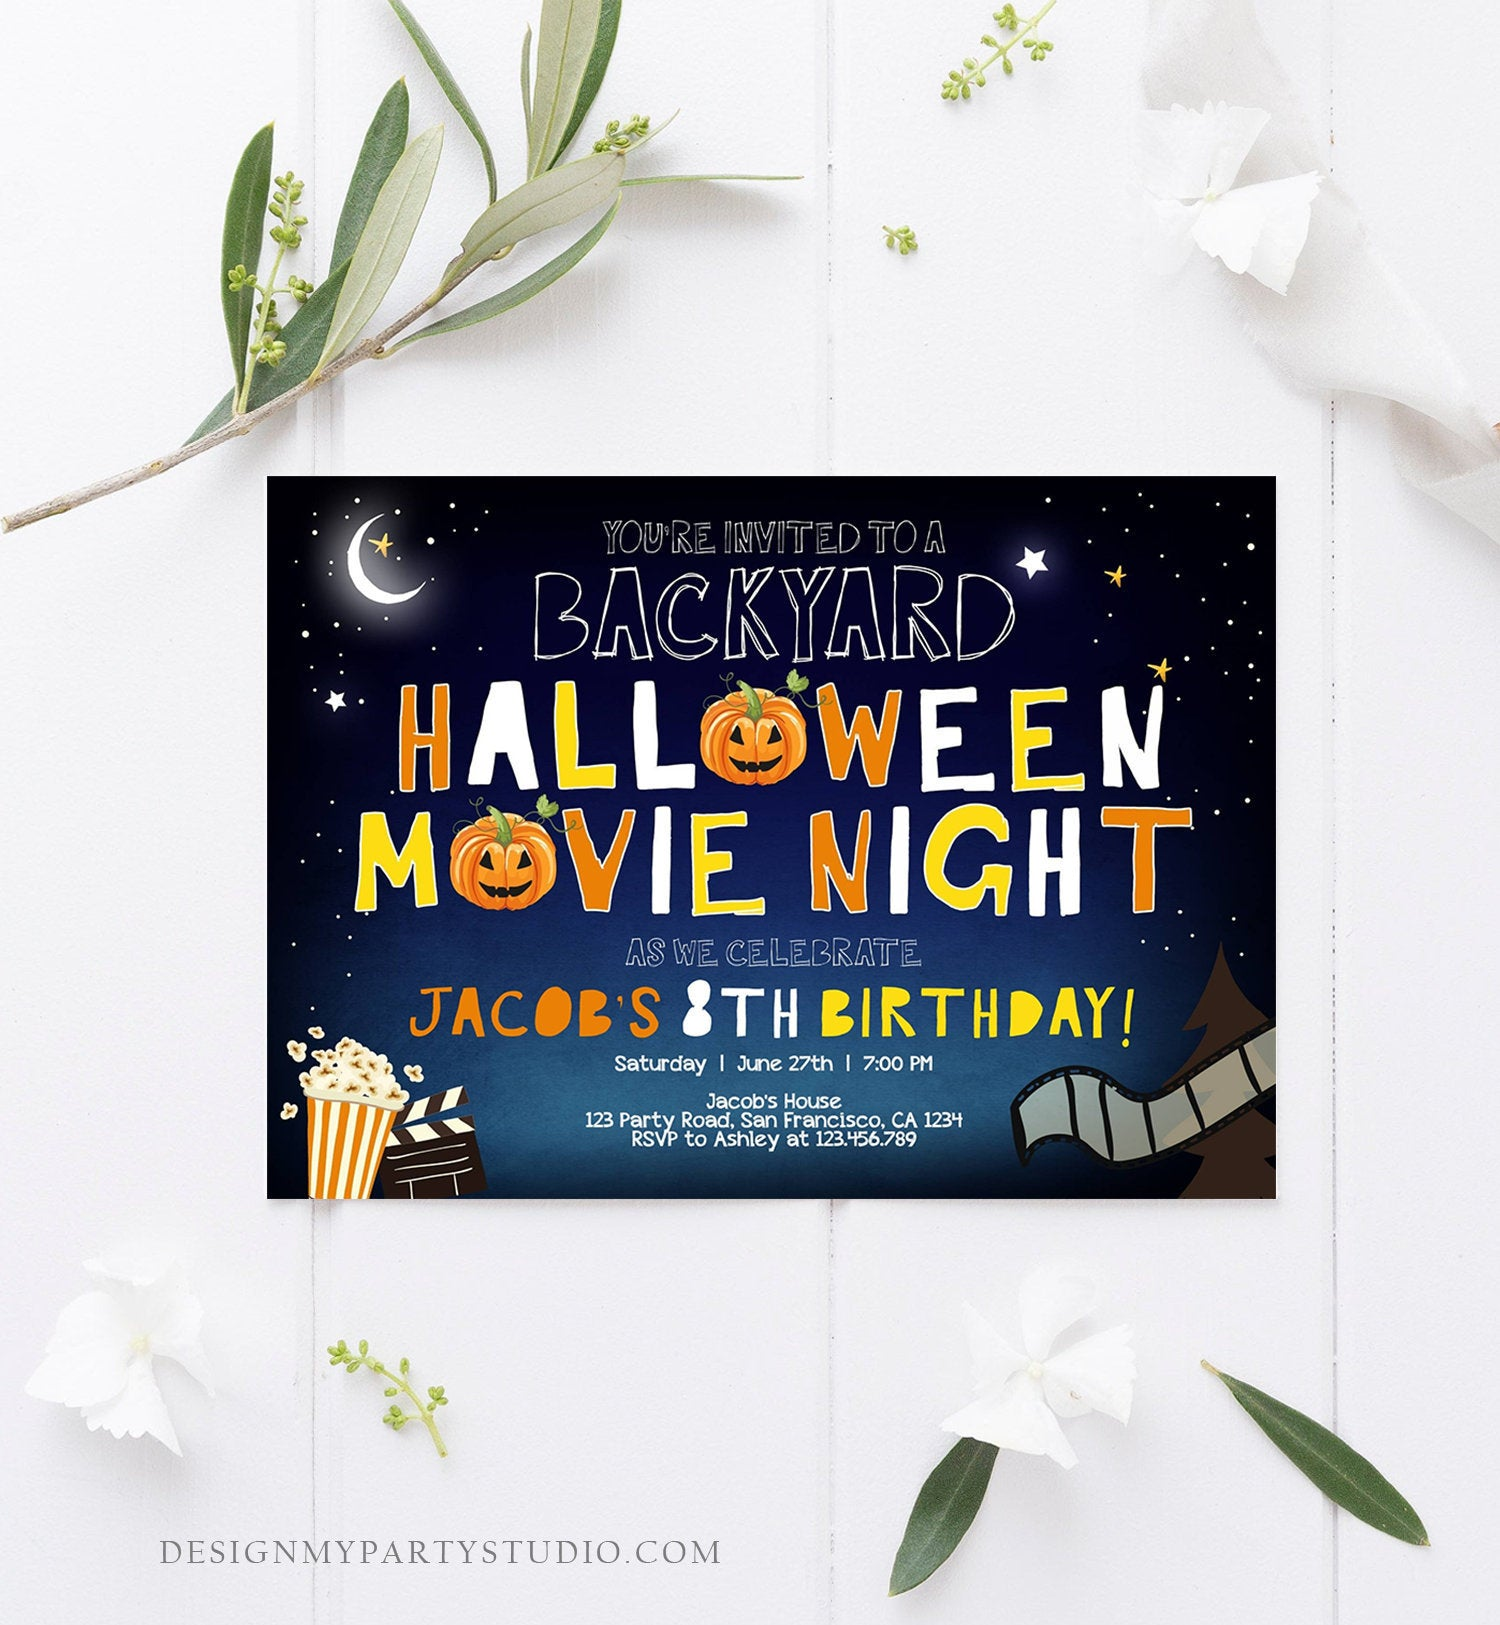 Editable Halloween Movie Night Birthday Invitation Outdoor Backyard Scary Movie Party Popcorn Spooktacular Pumpkin Template Corjl 0180